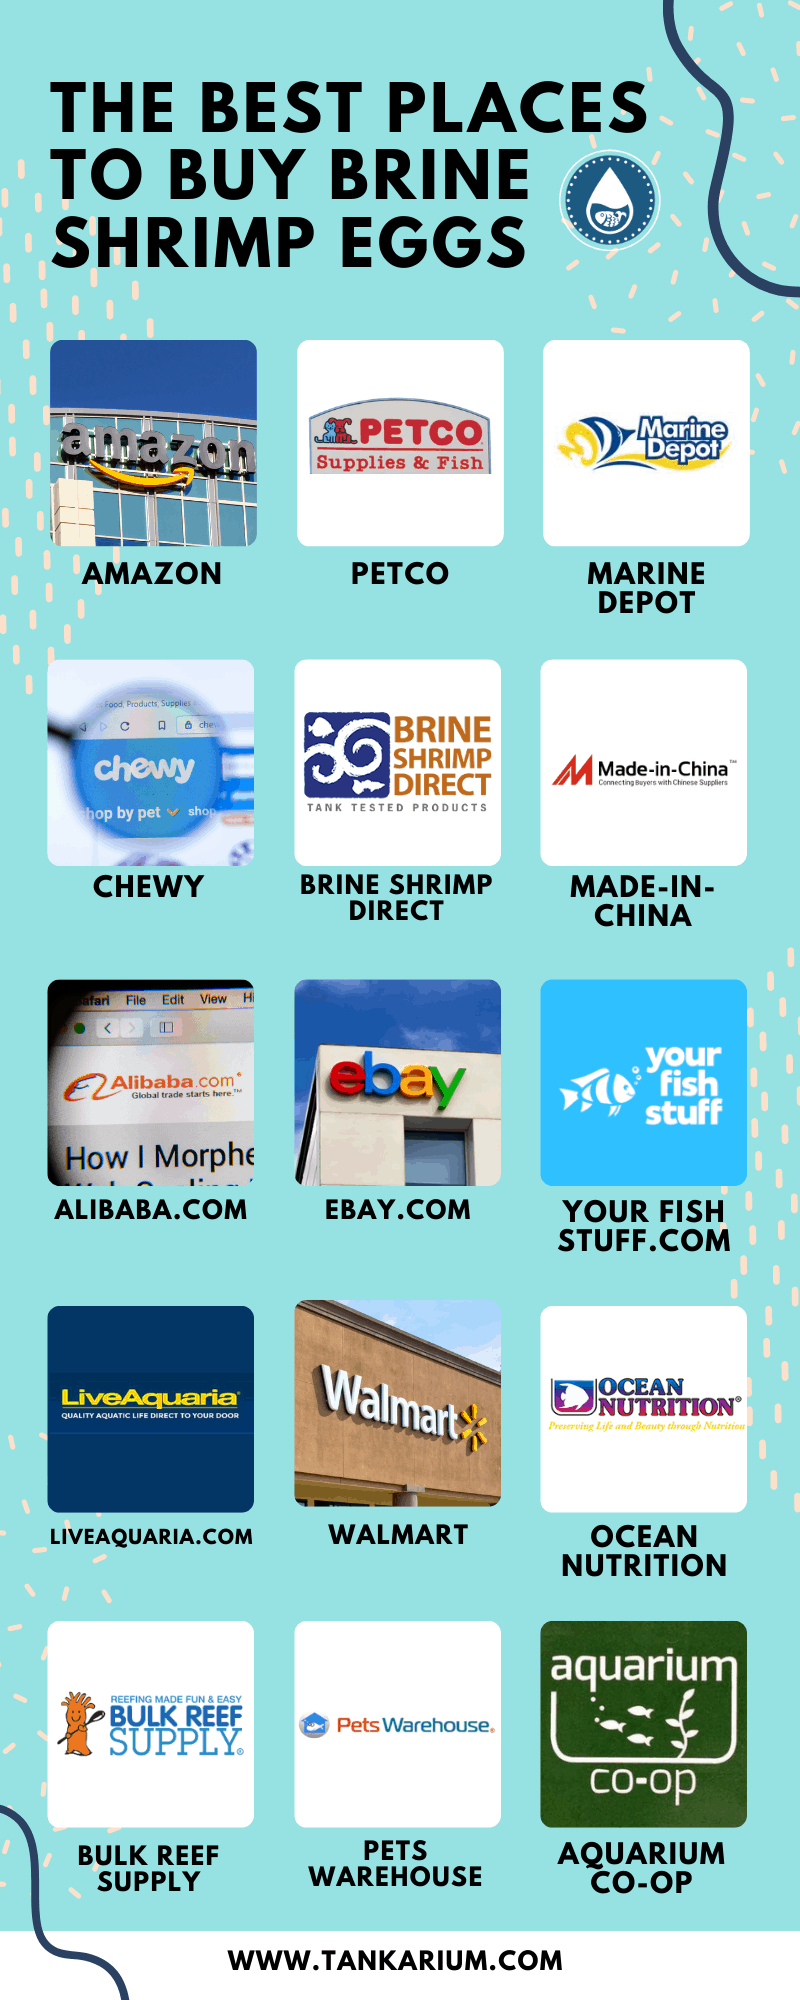 The Best Places To Buy Brine Shrimp Eggs - Infographic